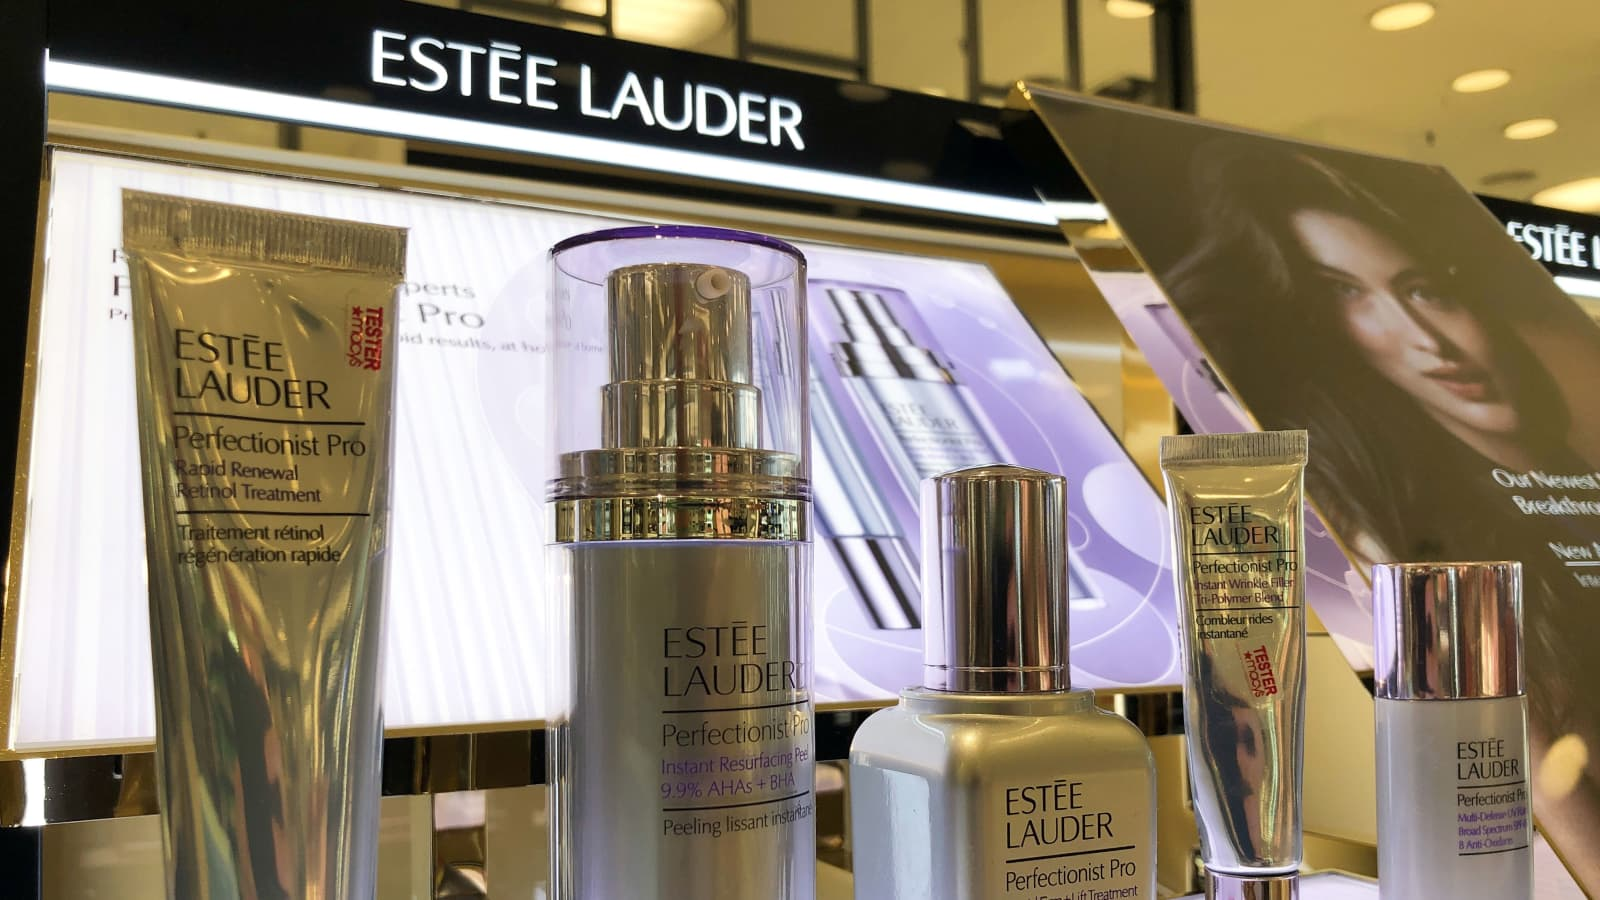 ESTEE LAUDER: Discover Beauty at esteelauder.com, your destination for high-performance Skincare, Makeup, Fragrance, videos, more. Free Shipping & Returns.